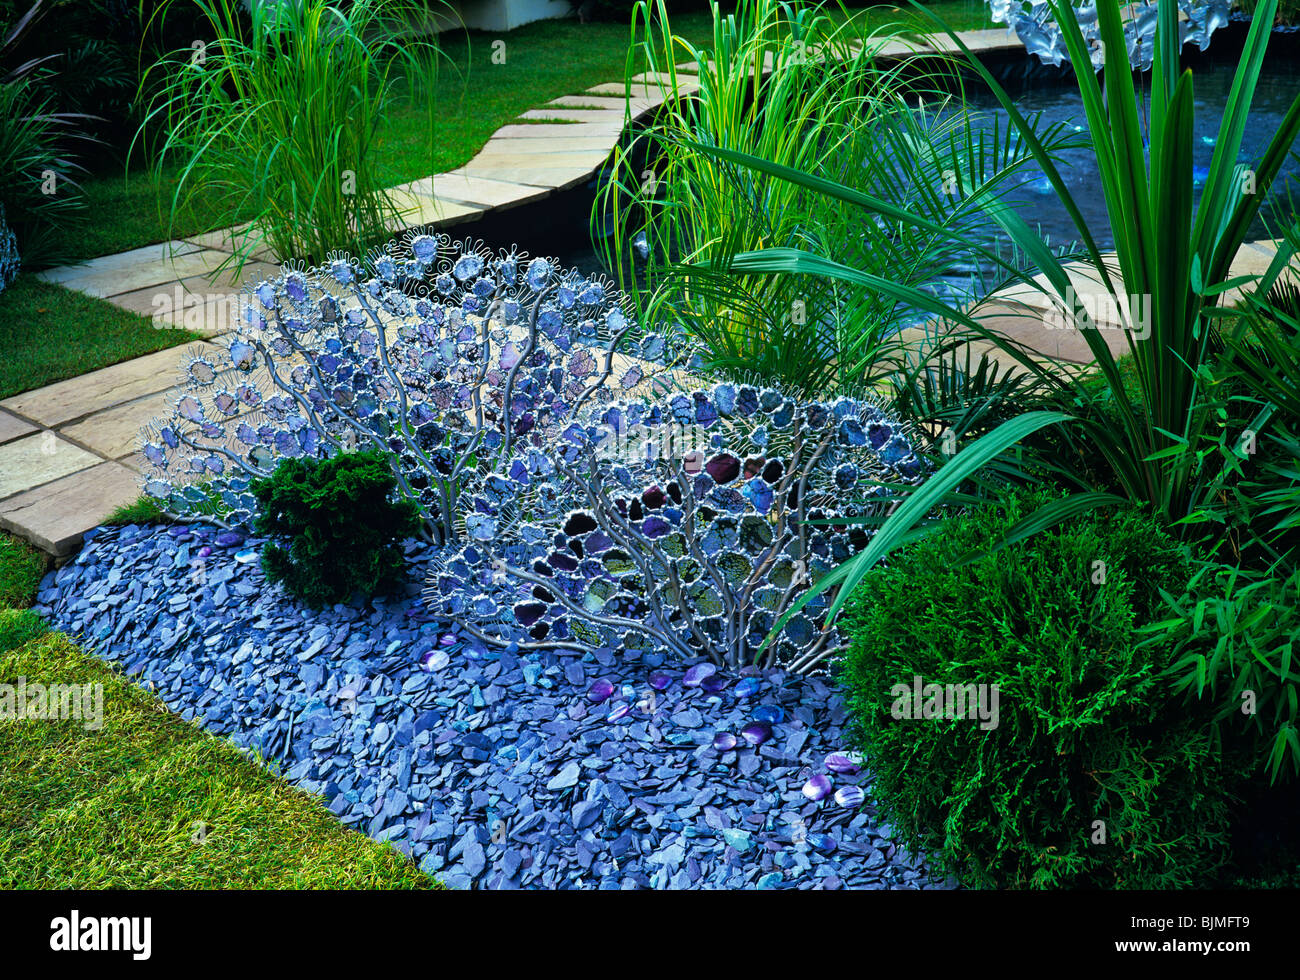 Decorative details from a Water Garden with glass creationsStock Photo